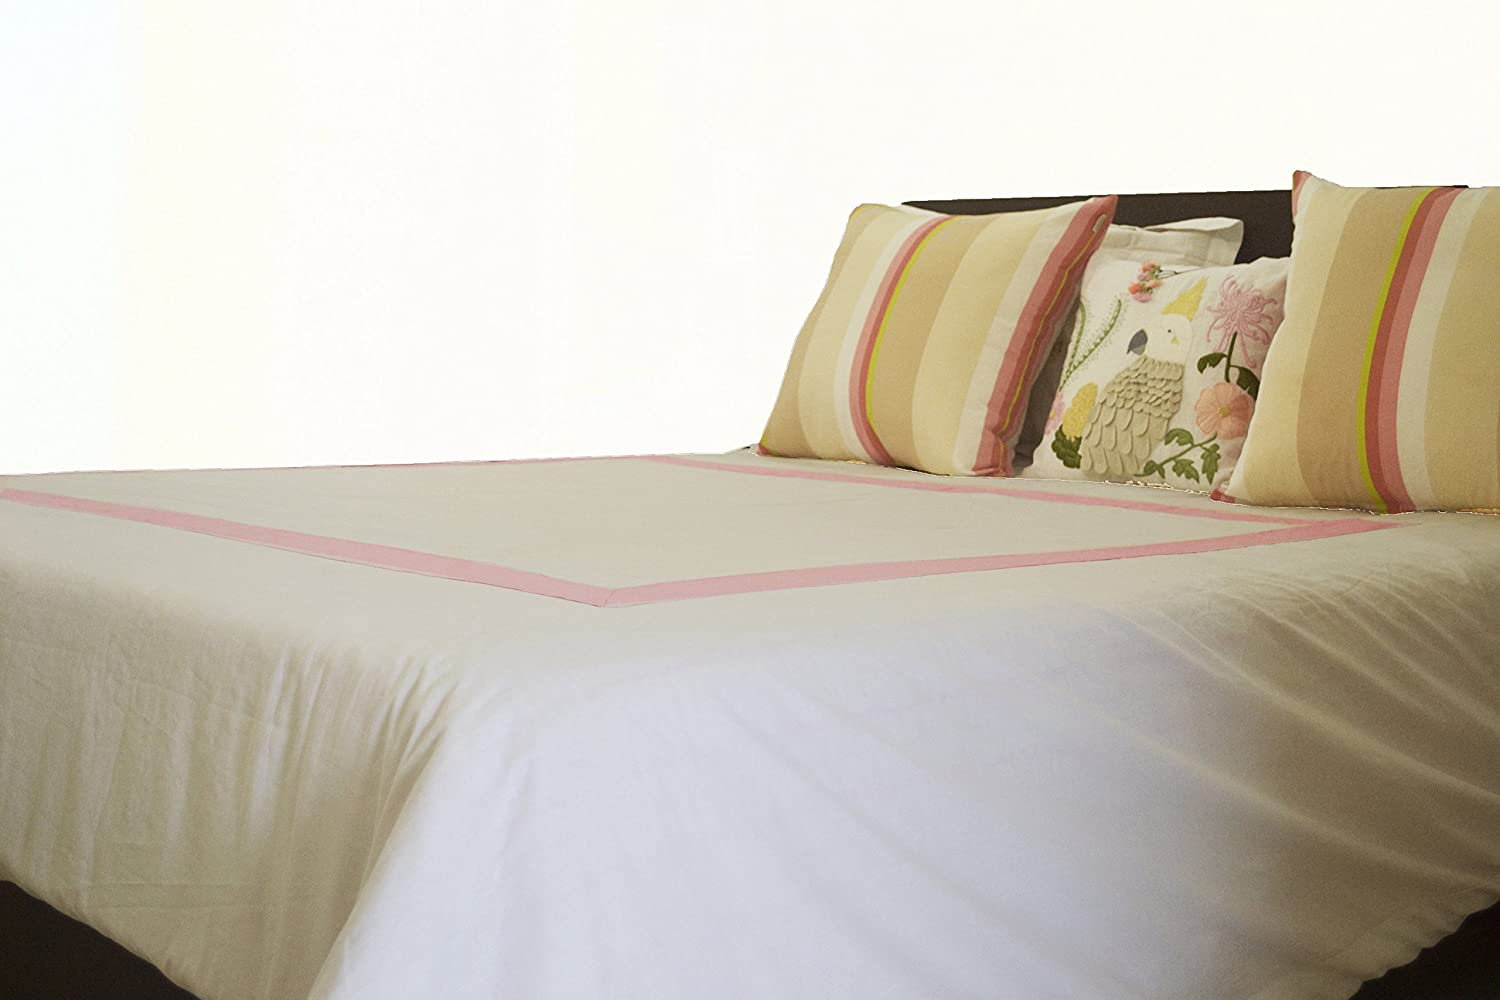 Image of Monogrammed Duvet Cover, White Duvet Cover, Girls Bedding, Pure Cotton Bed Cover, Dorm Bedding Home and Kitchen